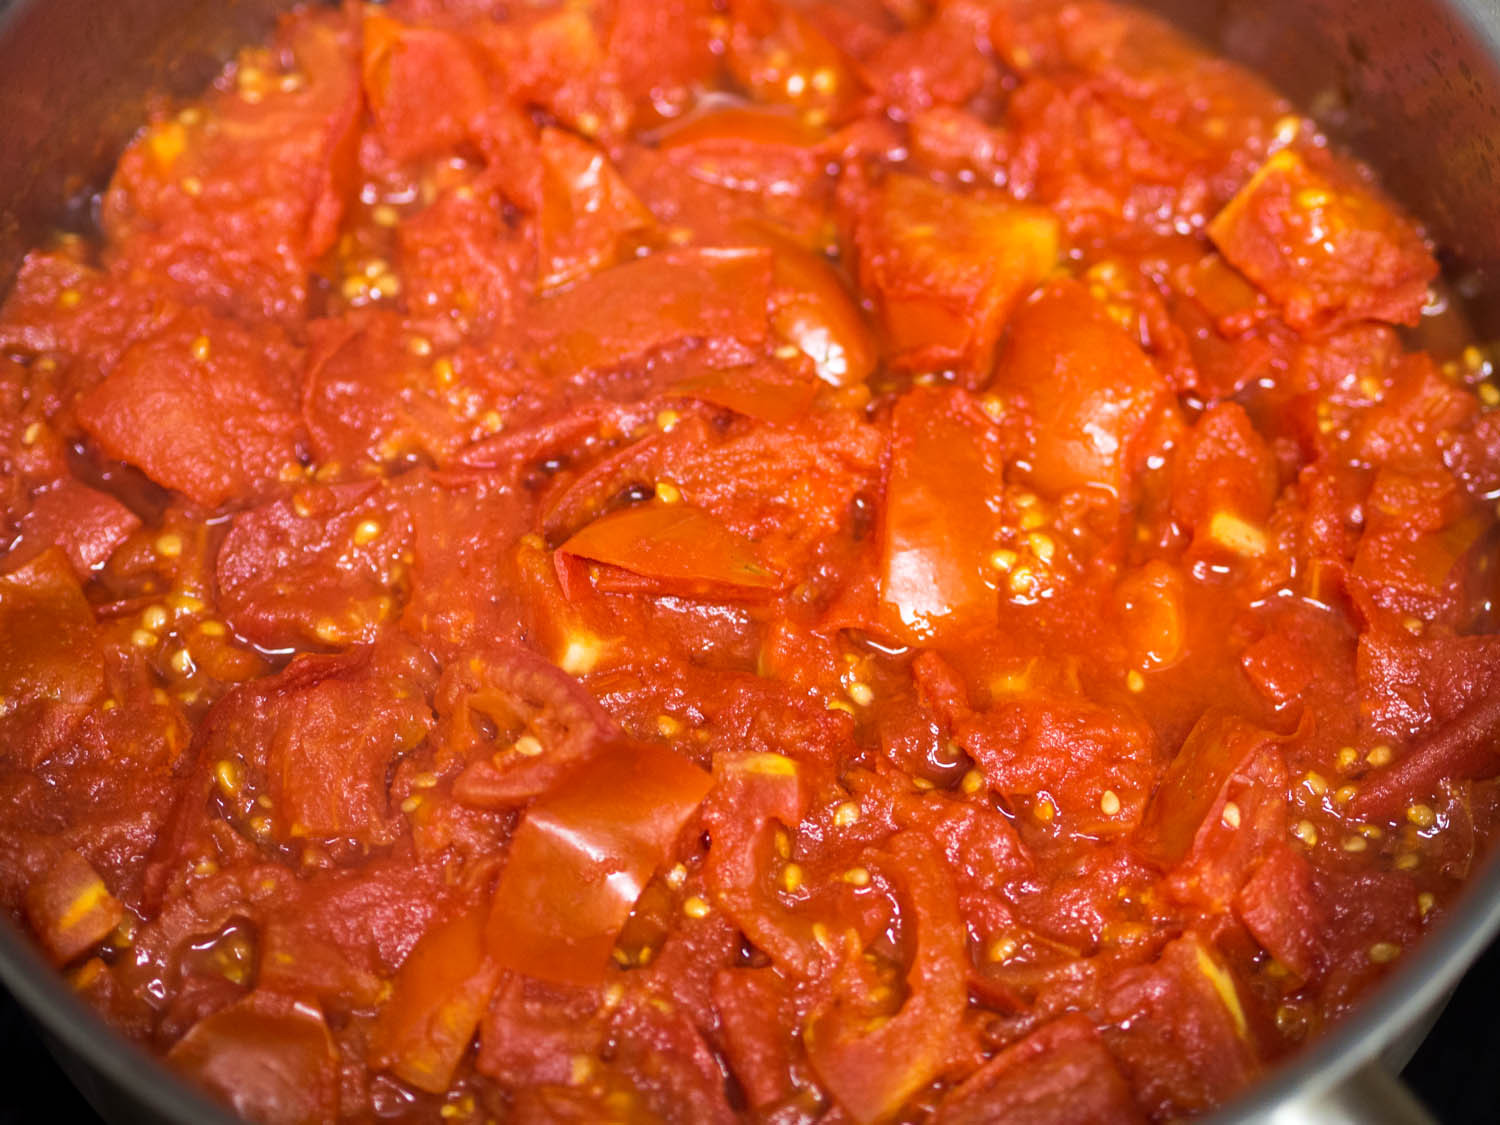 Tomato Sauce With Fresh Tomatoes  How to Make the Best Tomato Sauce From Fresh Tomatoes